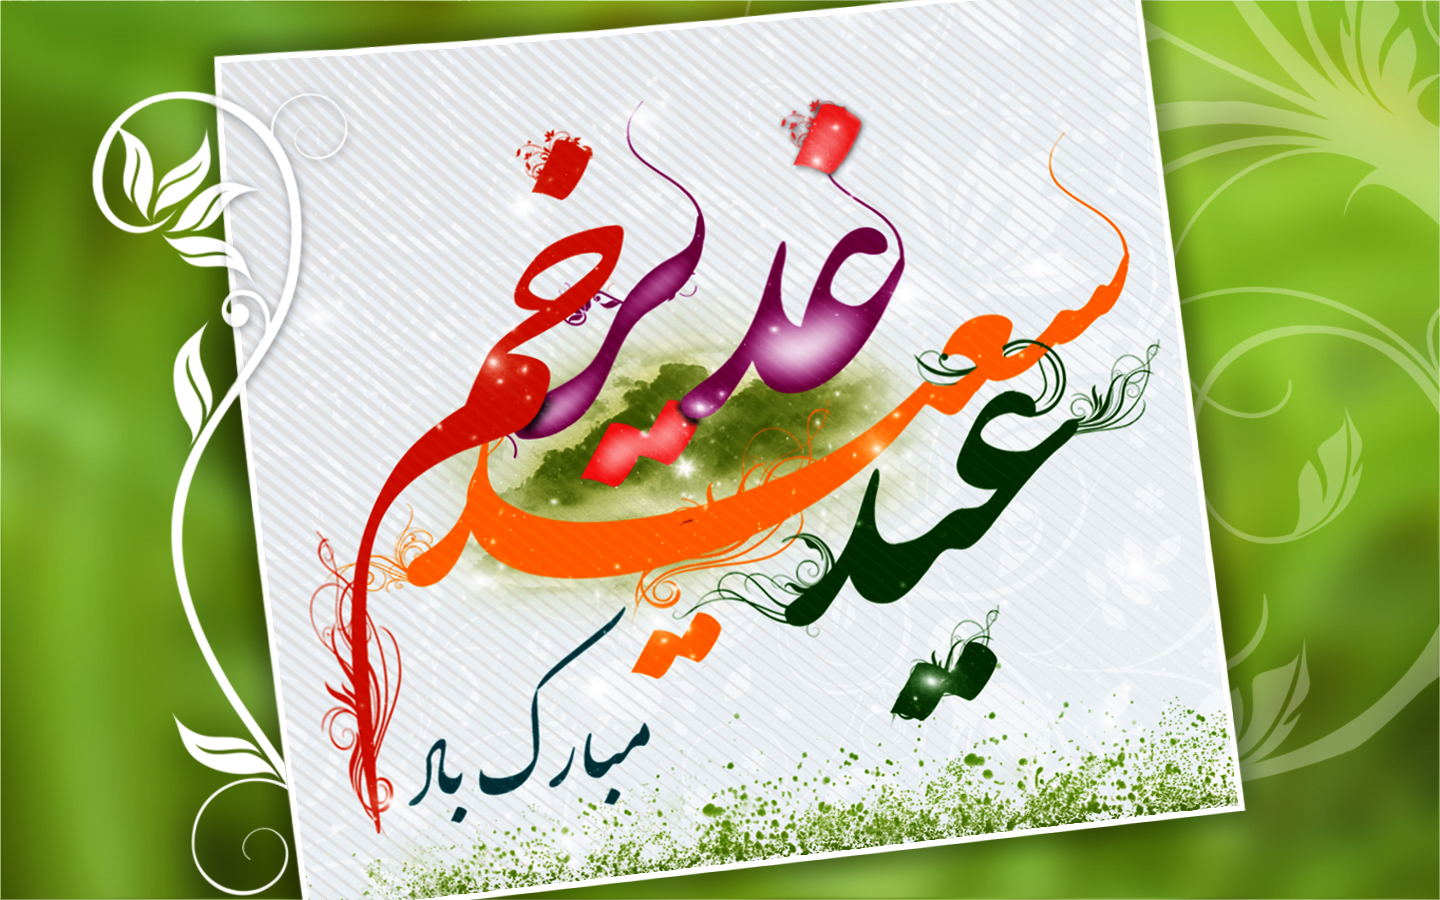 Image result for ‫عید غدیر مبارک‬‎